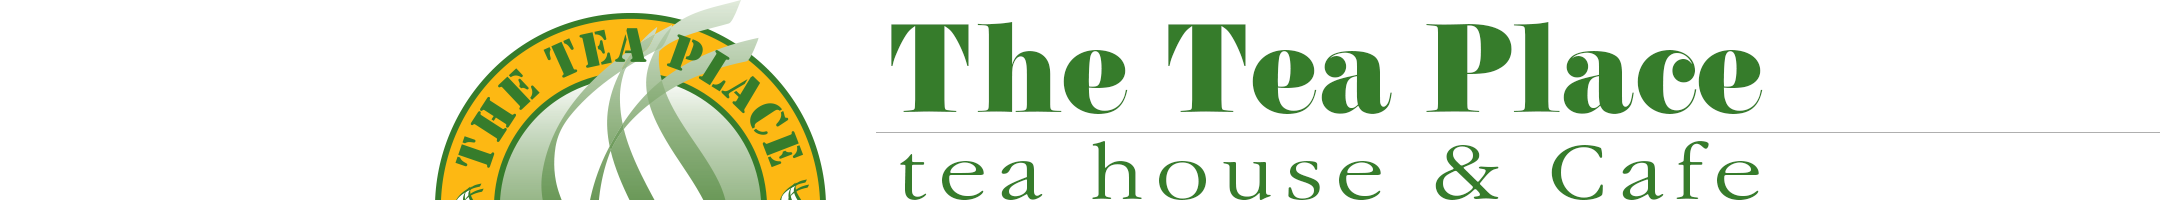 The Tea Place Logo